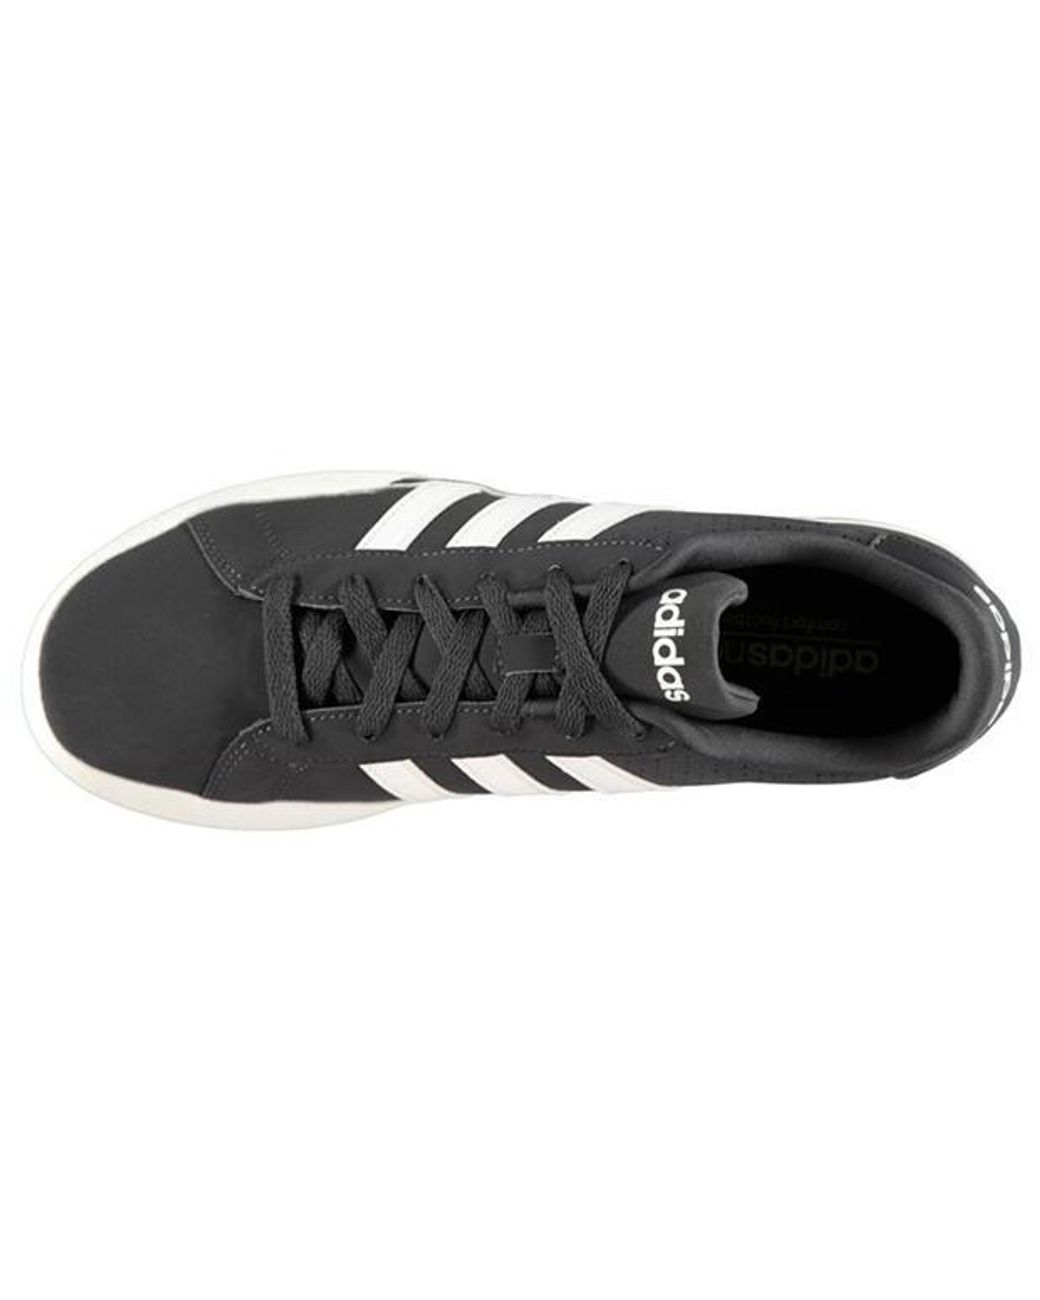 adidas neo daily mono trainers- OFF 66